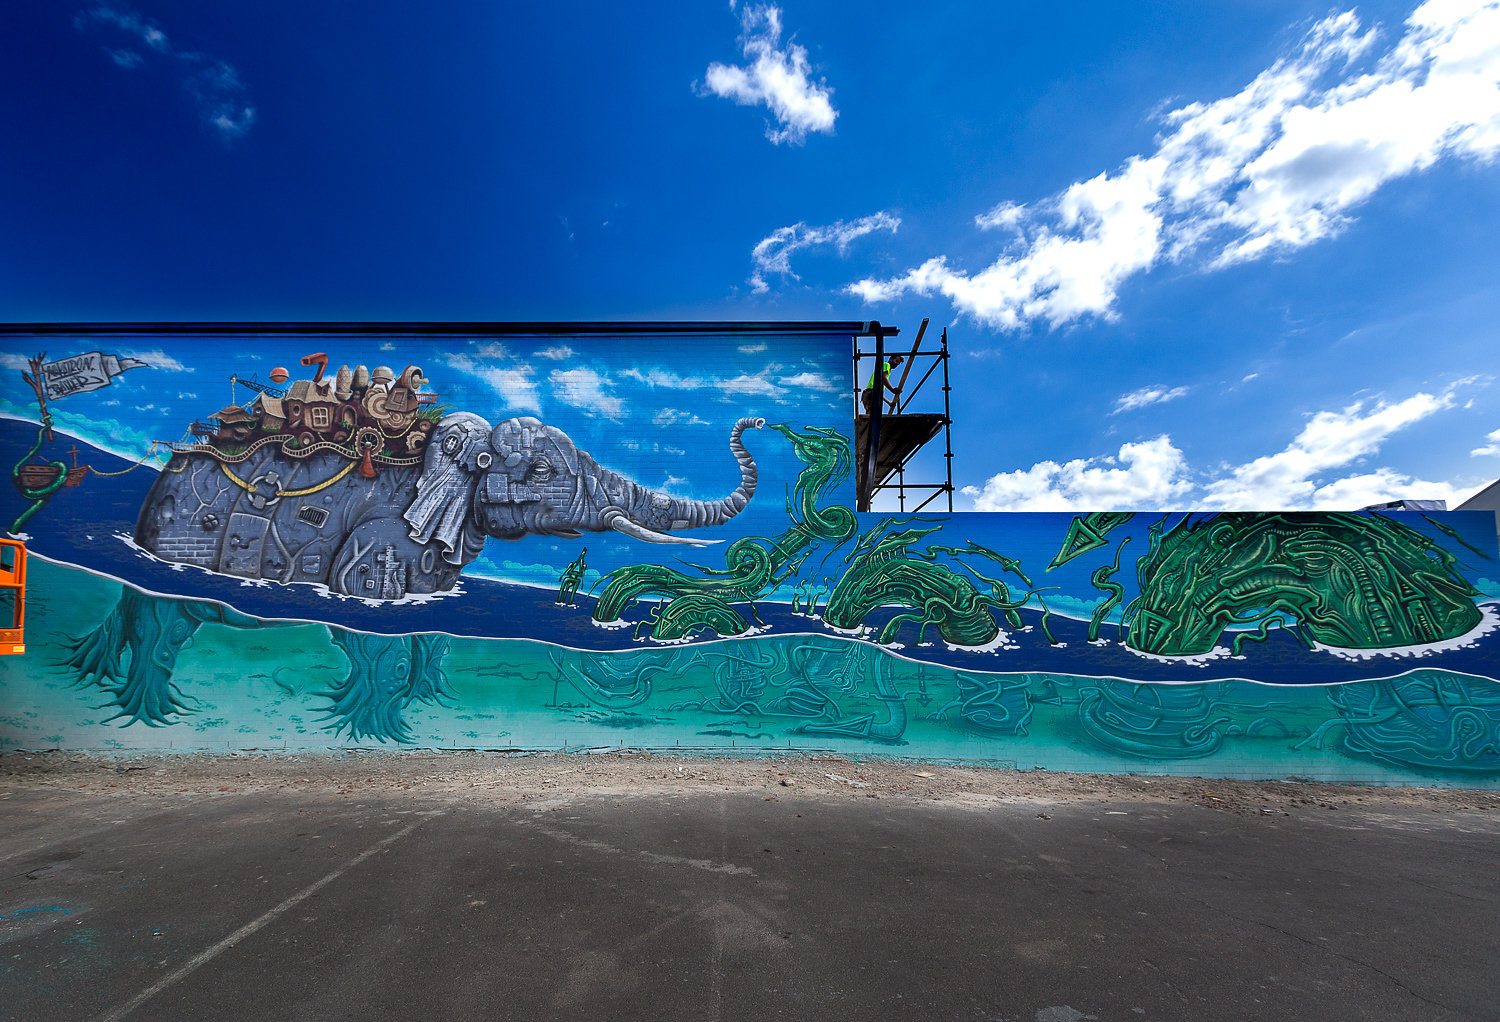 The Elephant Mural